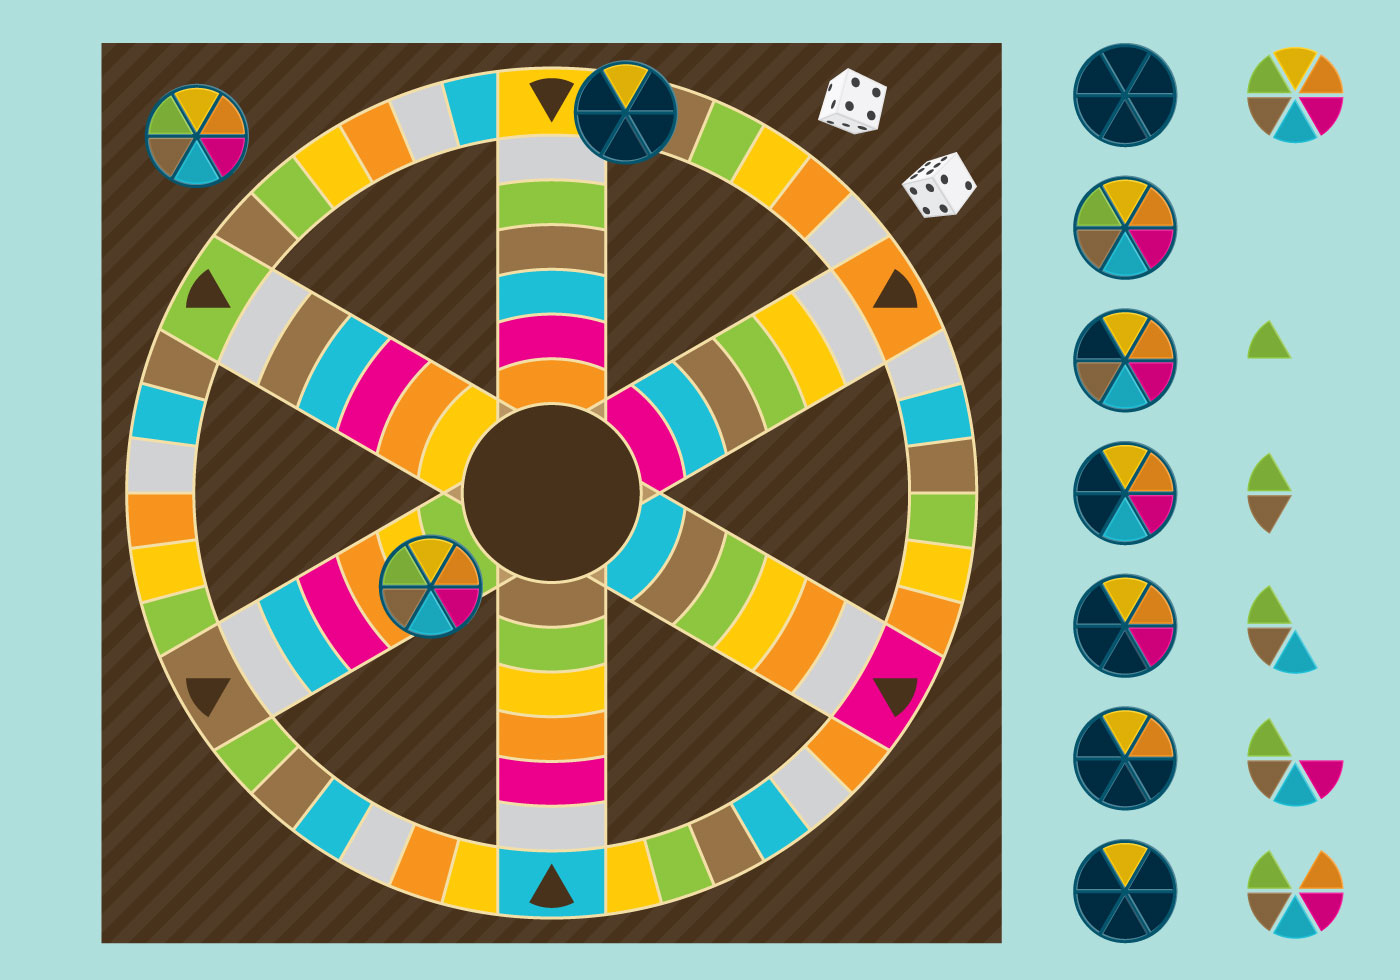 trivia board game download free vector art stock graphics u0026 images